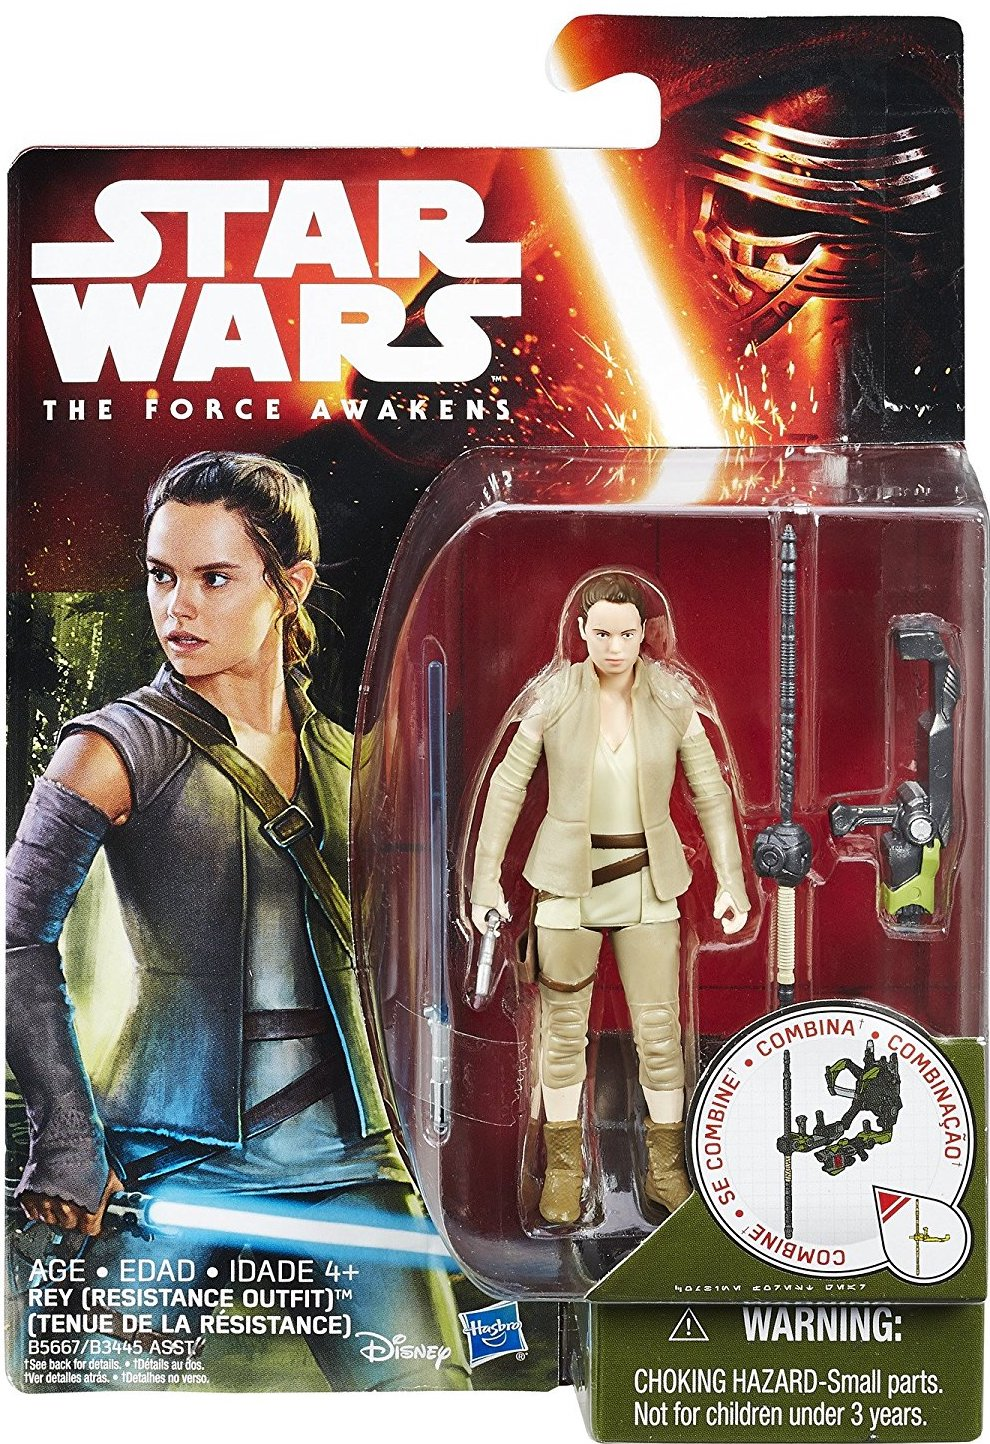 Rey (Resistance Outfit) released in wave 3 with a lightsaber and the figure behind #Reygate